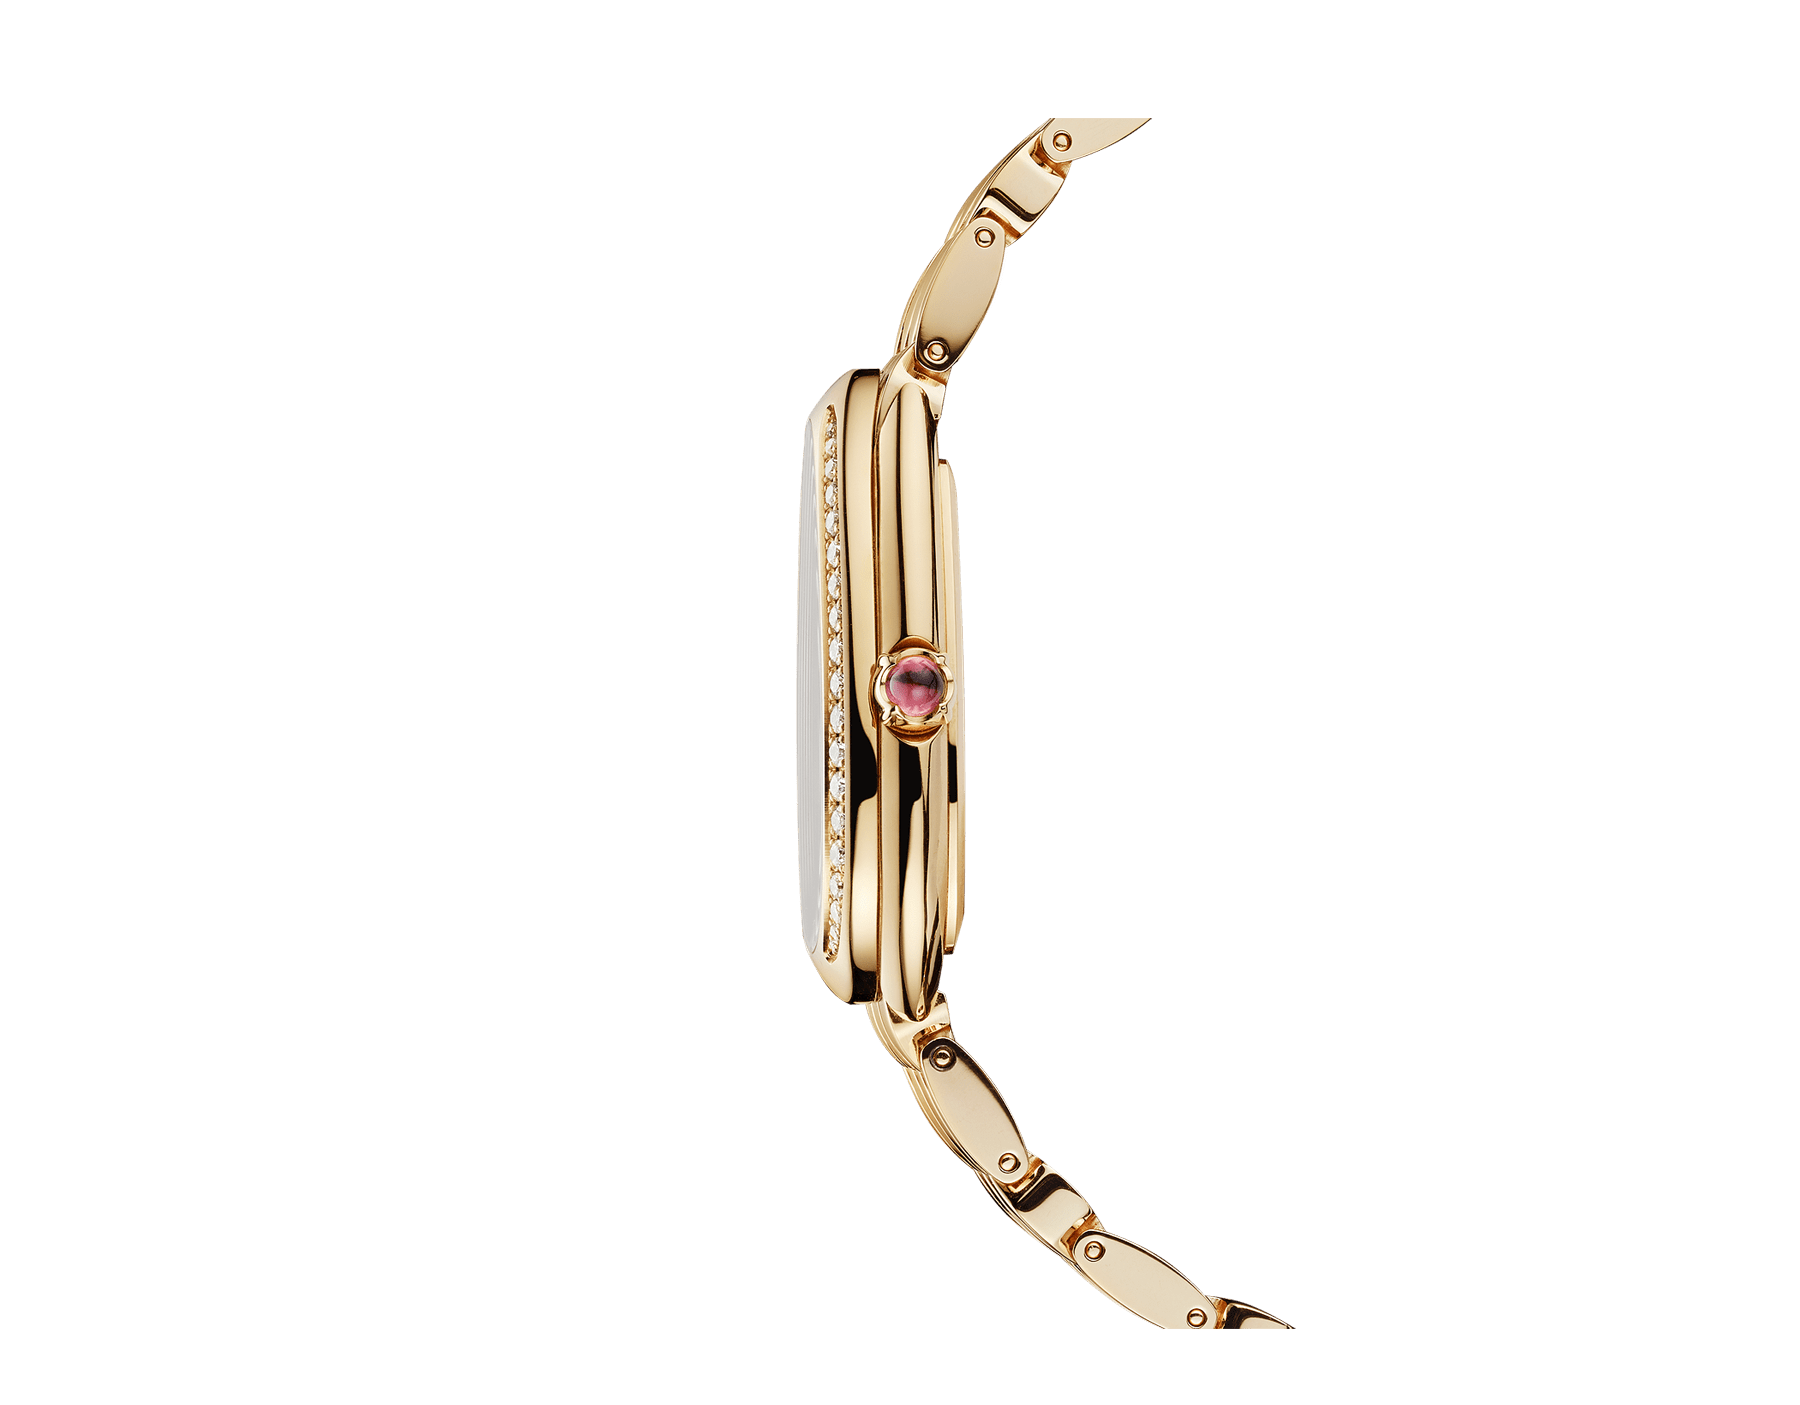 Serpenti Seduttori watch with 18 kt yellow gold case, 18 kt yellow gold bracelet, 18 kt yellow gold bezel set with diamonds and a white silver opaline dial. 103147 image 3